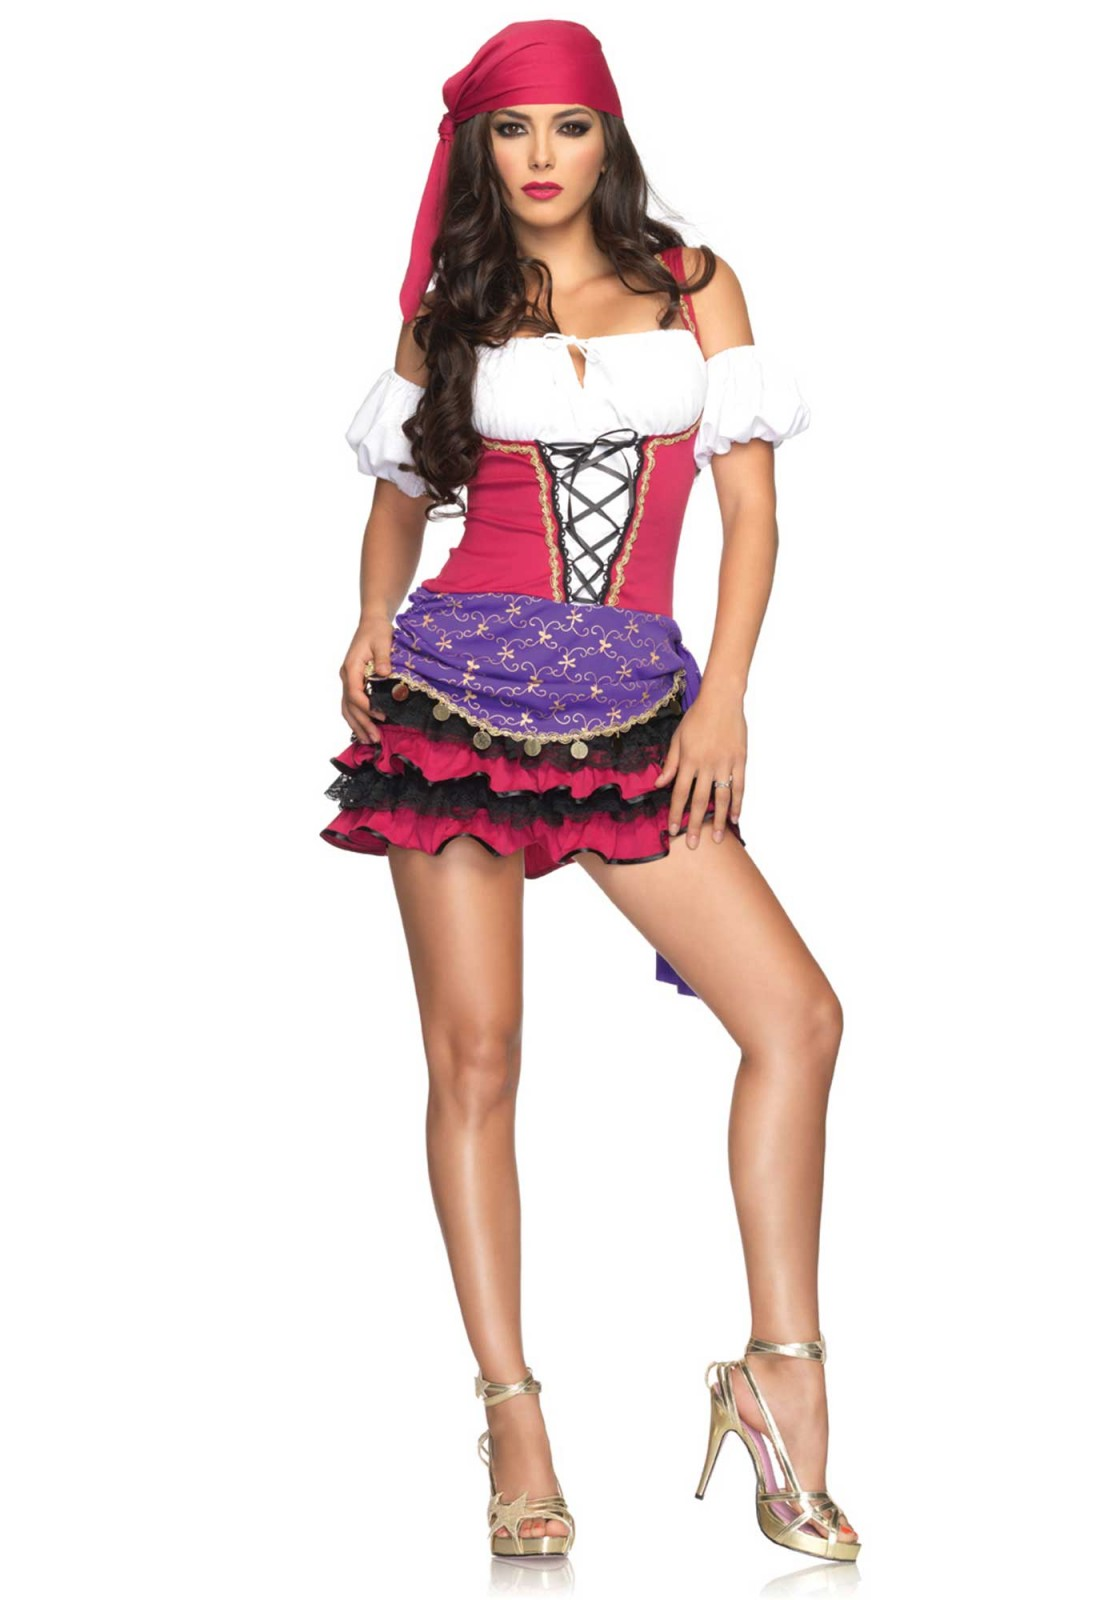 3Pc. Crystal Ball Gypsy Costume Set With Peasant Dress, Puff Sleeves, Head Scarf